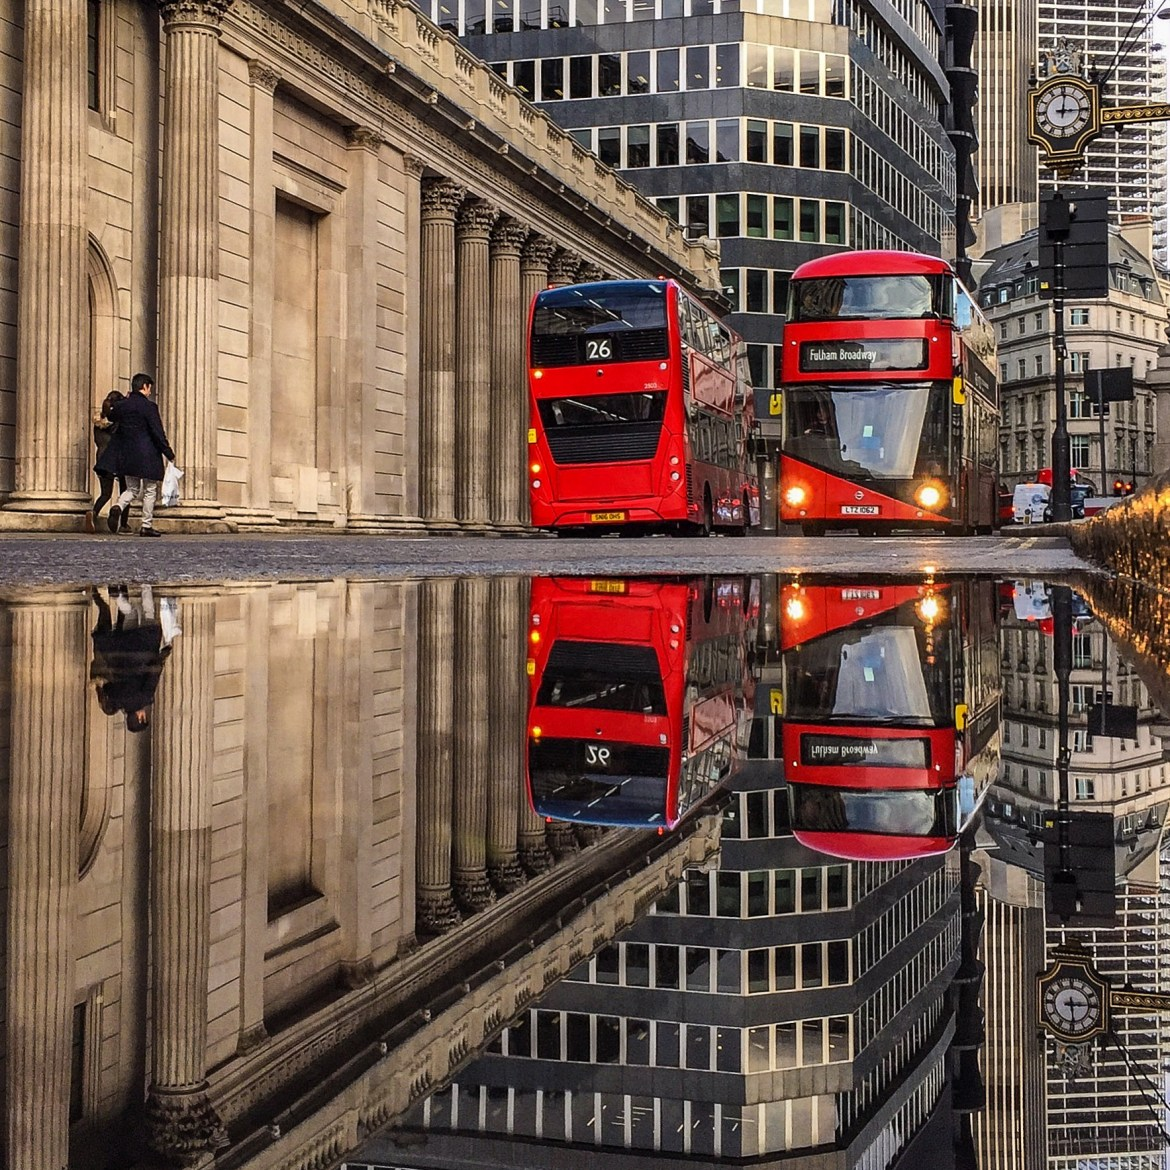 Photography in London #londonreflections